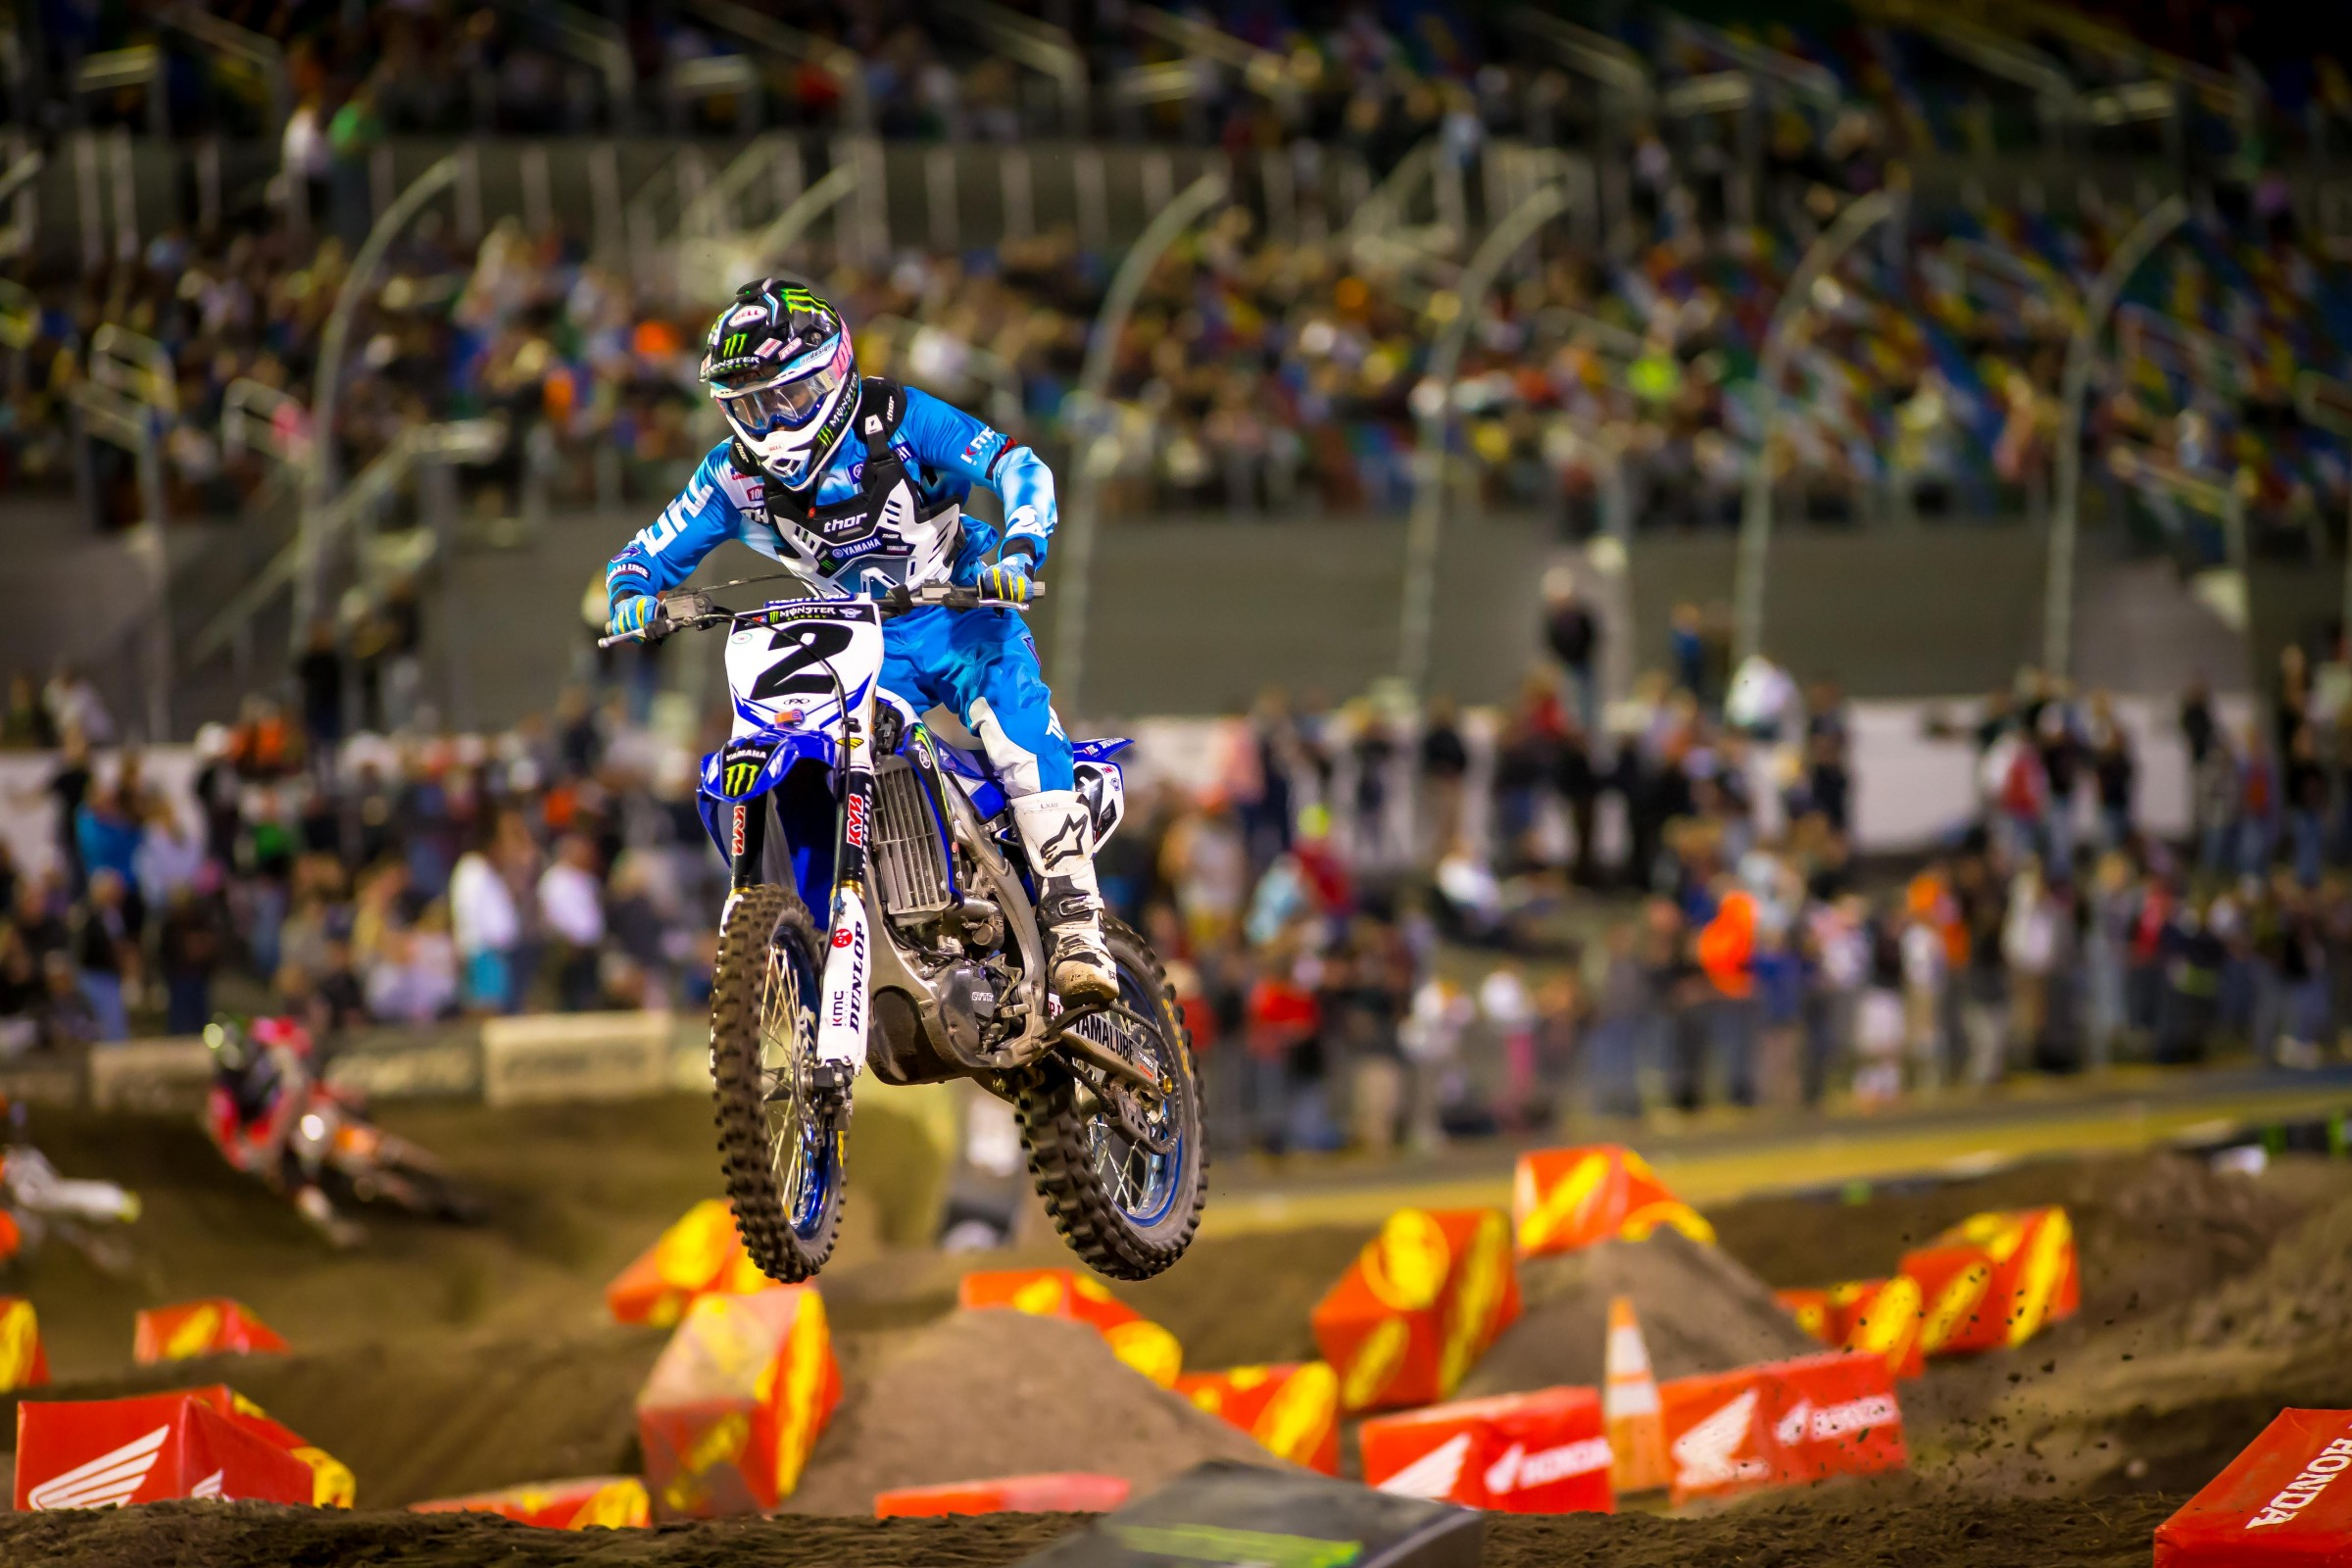 Cooper Webb captured his first podium of the year on Saturday.